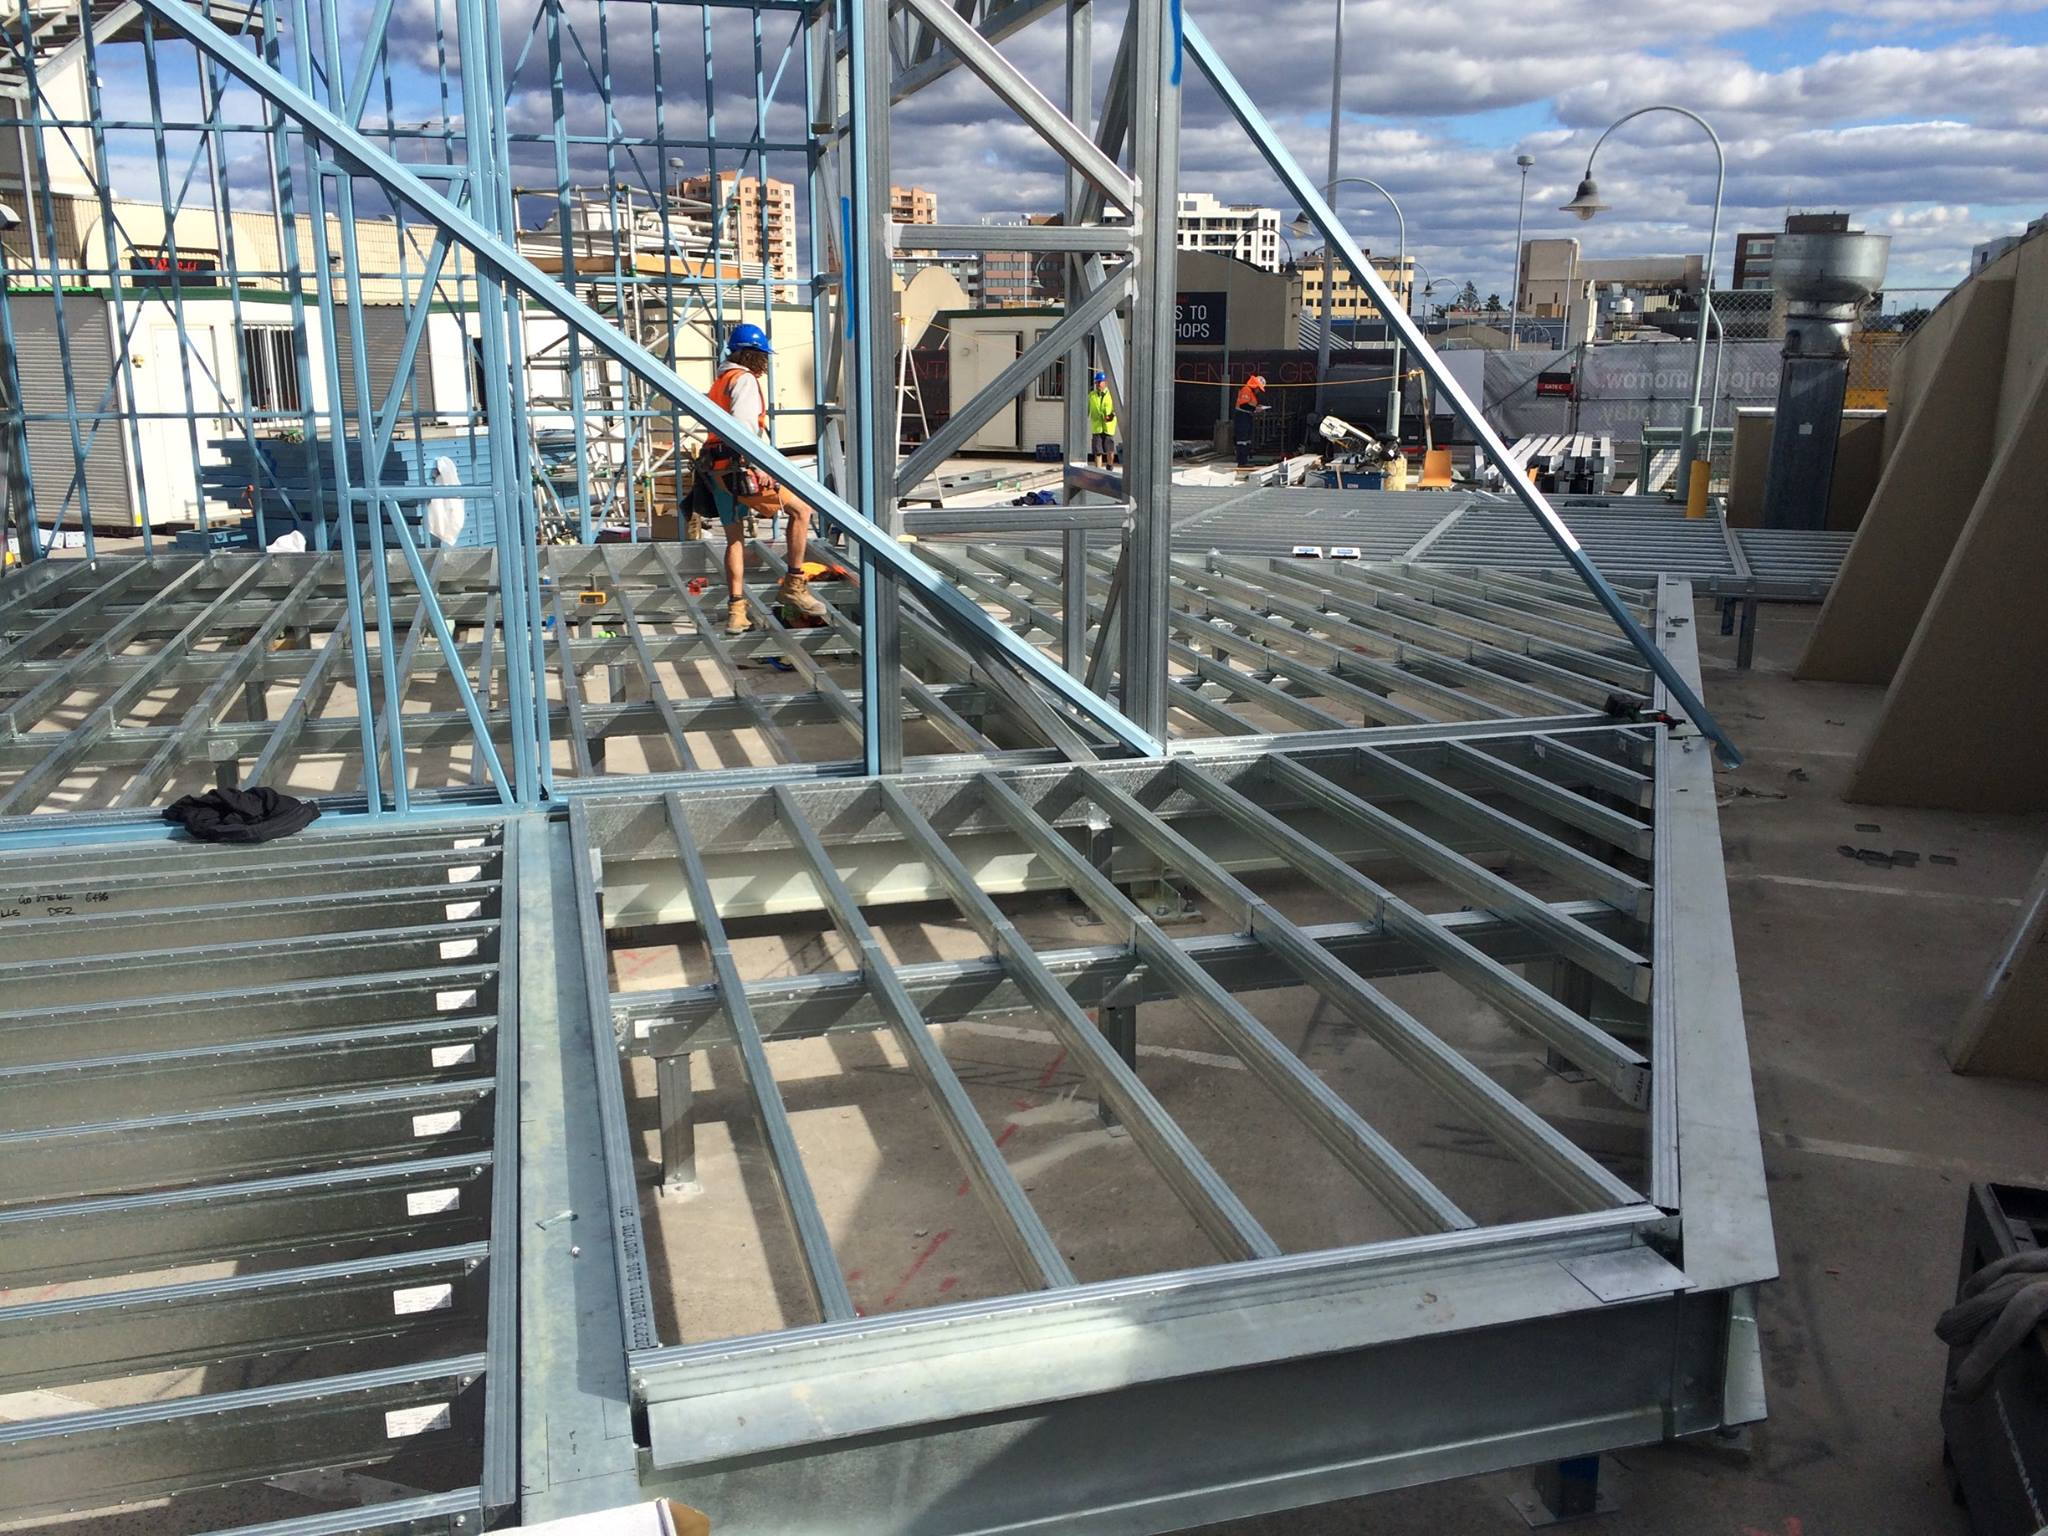 Commercial Boxspan deck framing with high kPa loading for a shopping centre alfresco dining area in Sydney